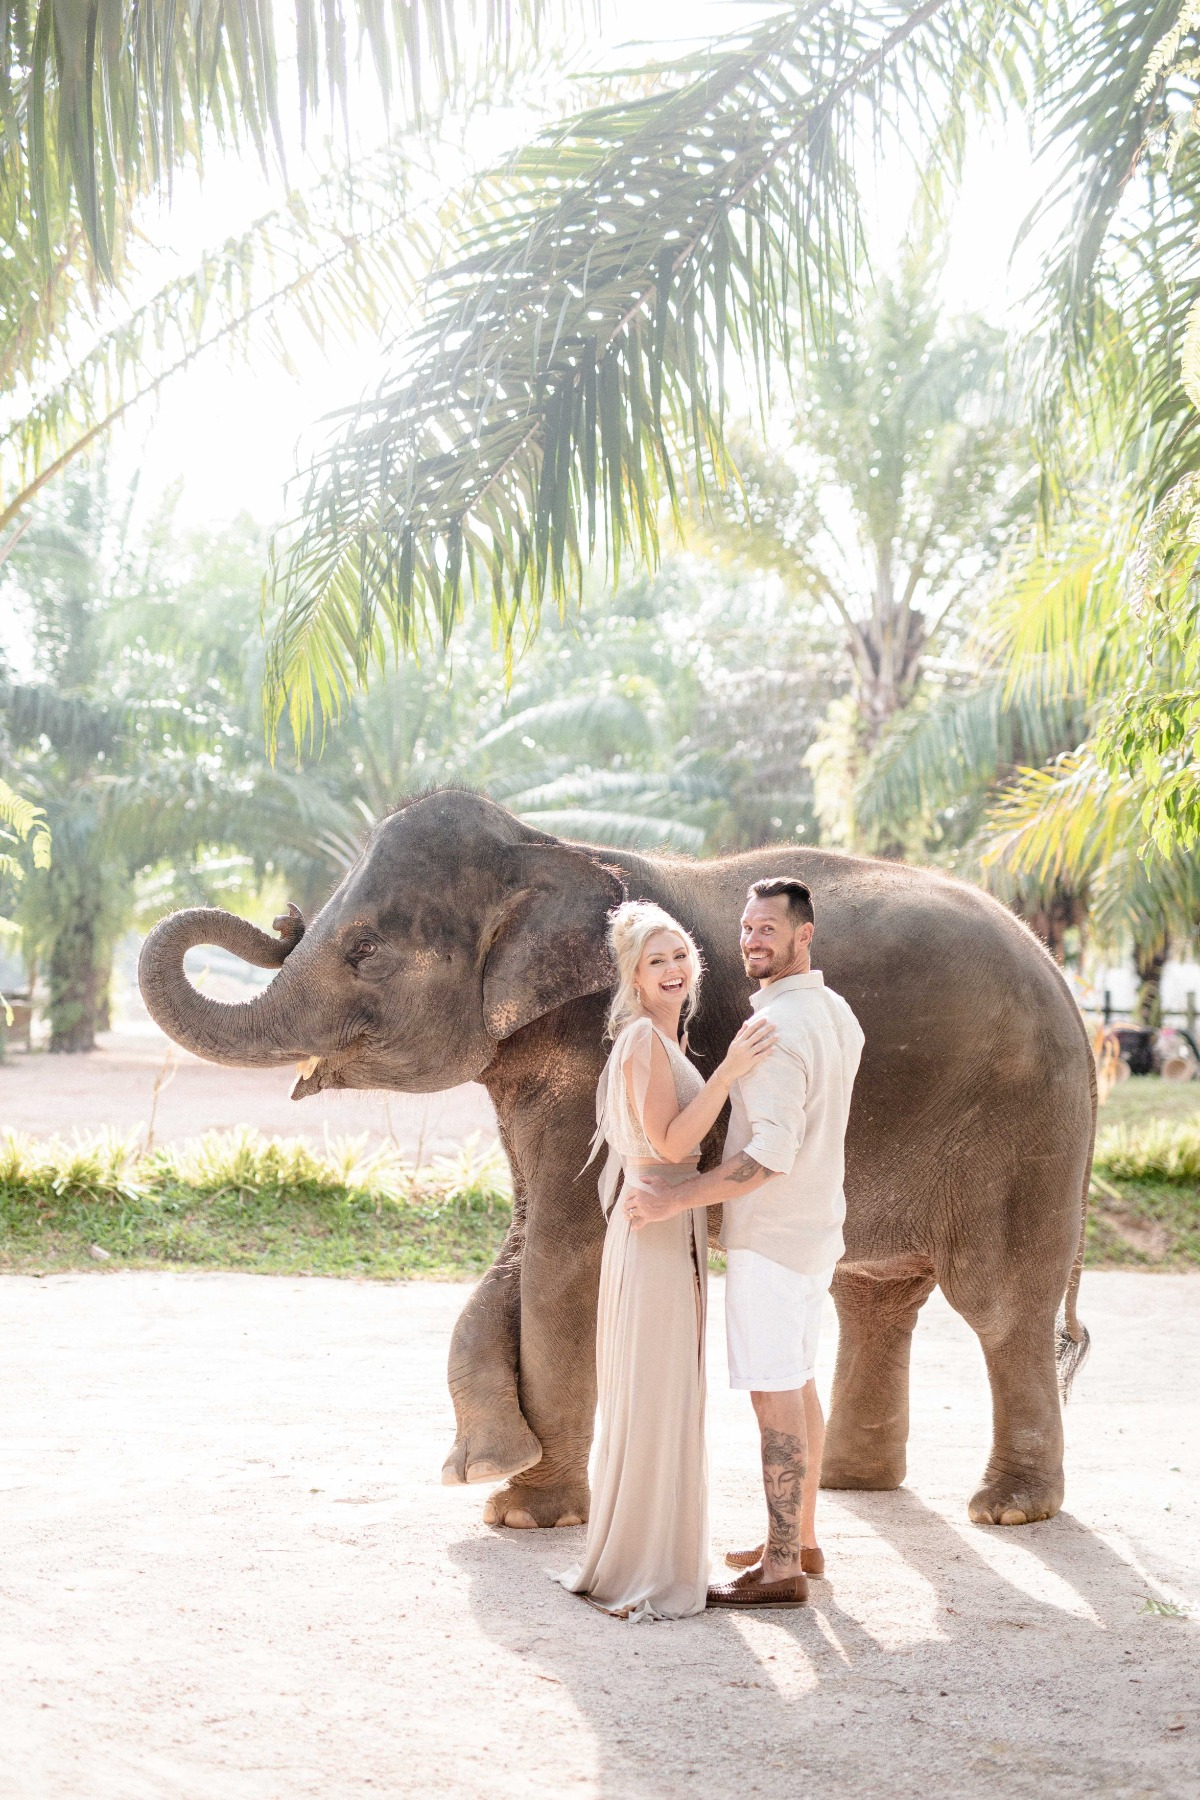 You Know Your Wedding Is Epic When One Of Your Guests Is An Elephant (Literally!)